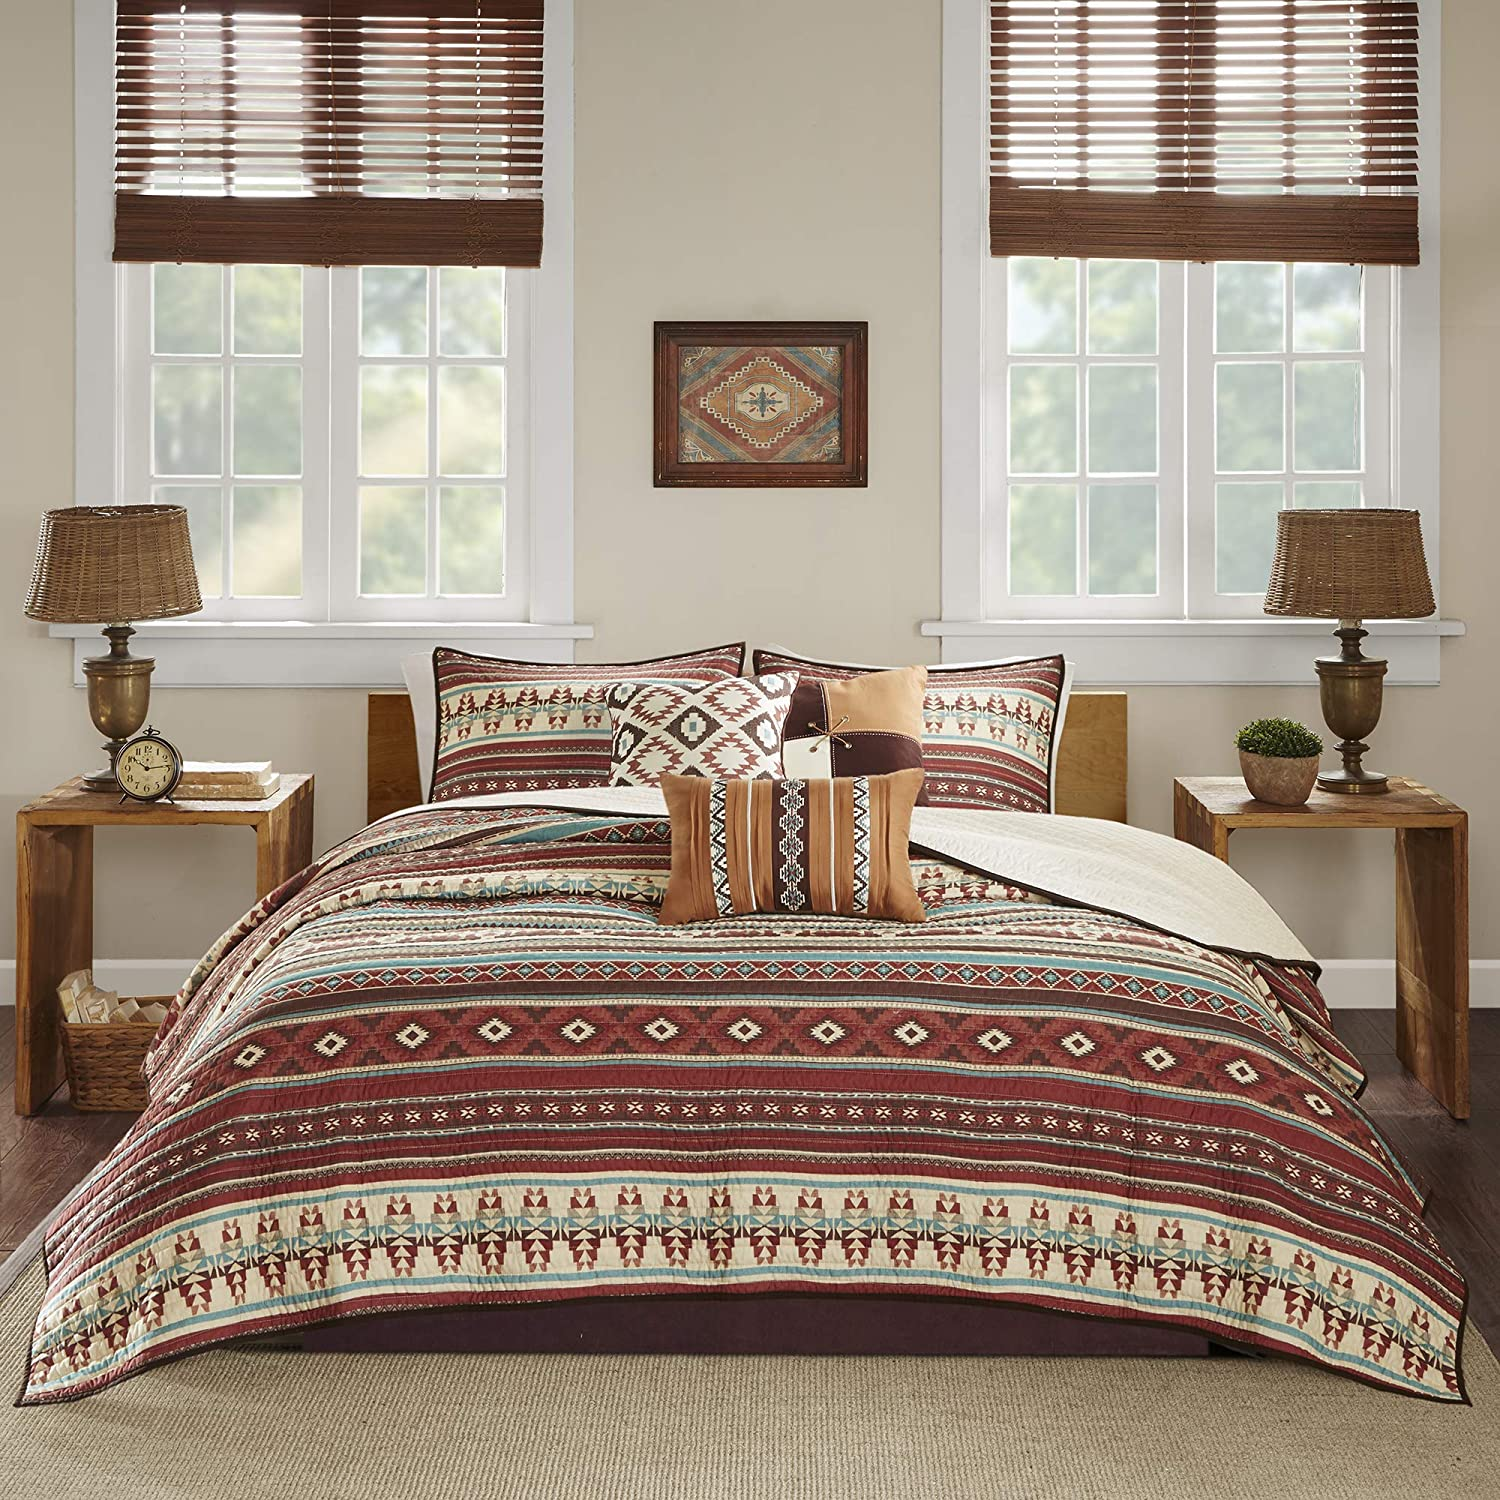 """Madison Park Quilt Rustic Southwestern All Season, Breathable Coverlet Bedspread, Lightweight Bedding, Shams, Decorative Pillow, Full/Queen(90""""x90""""), Taos, Ikat Red/Spice"""